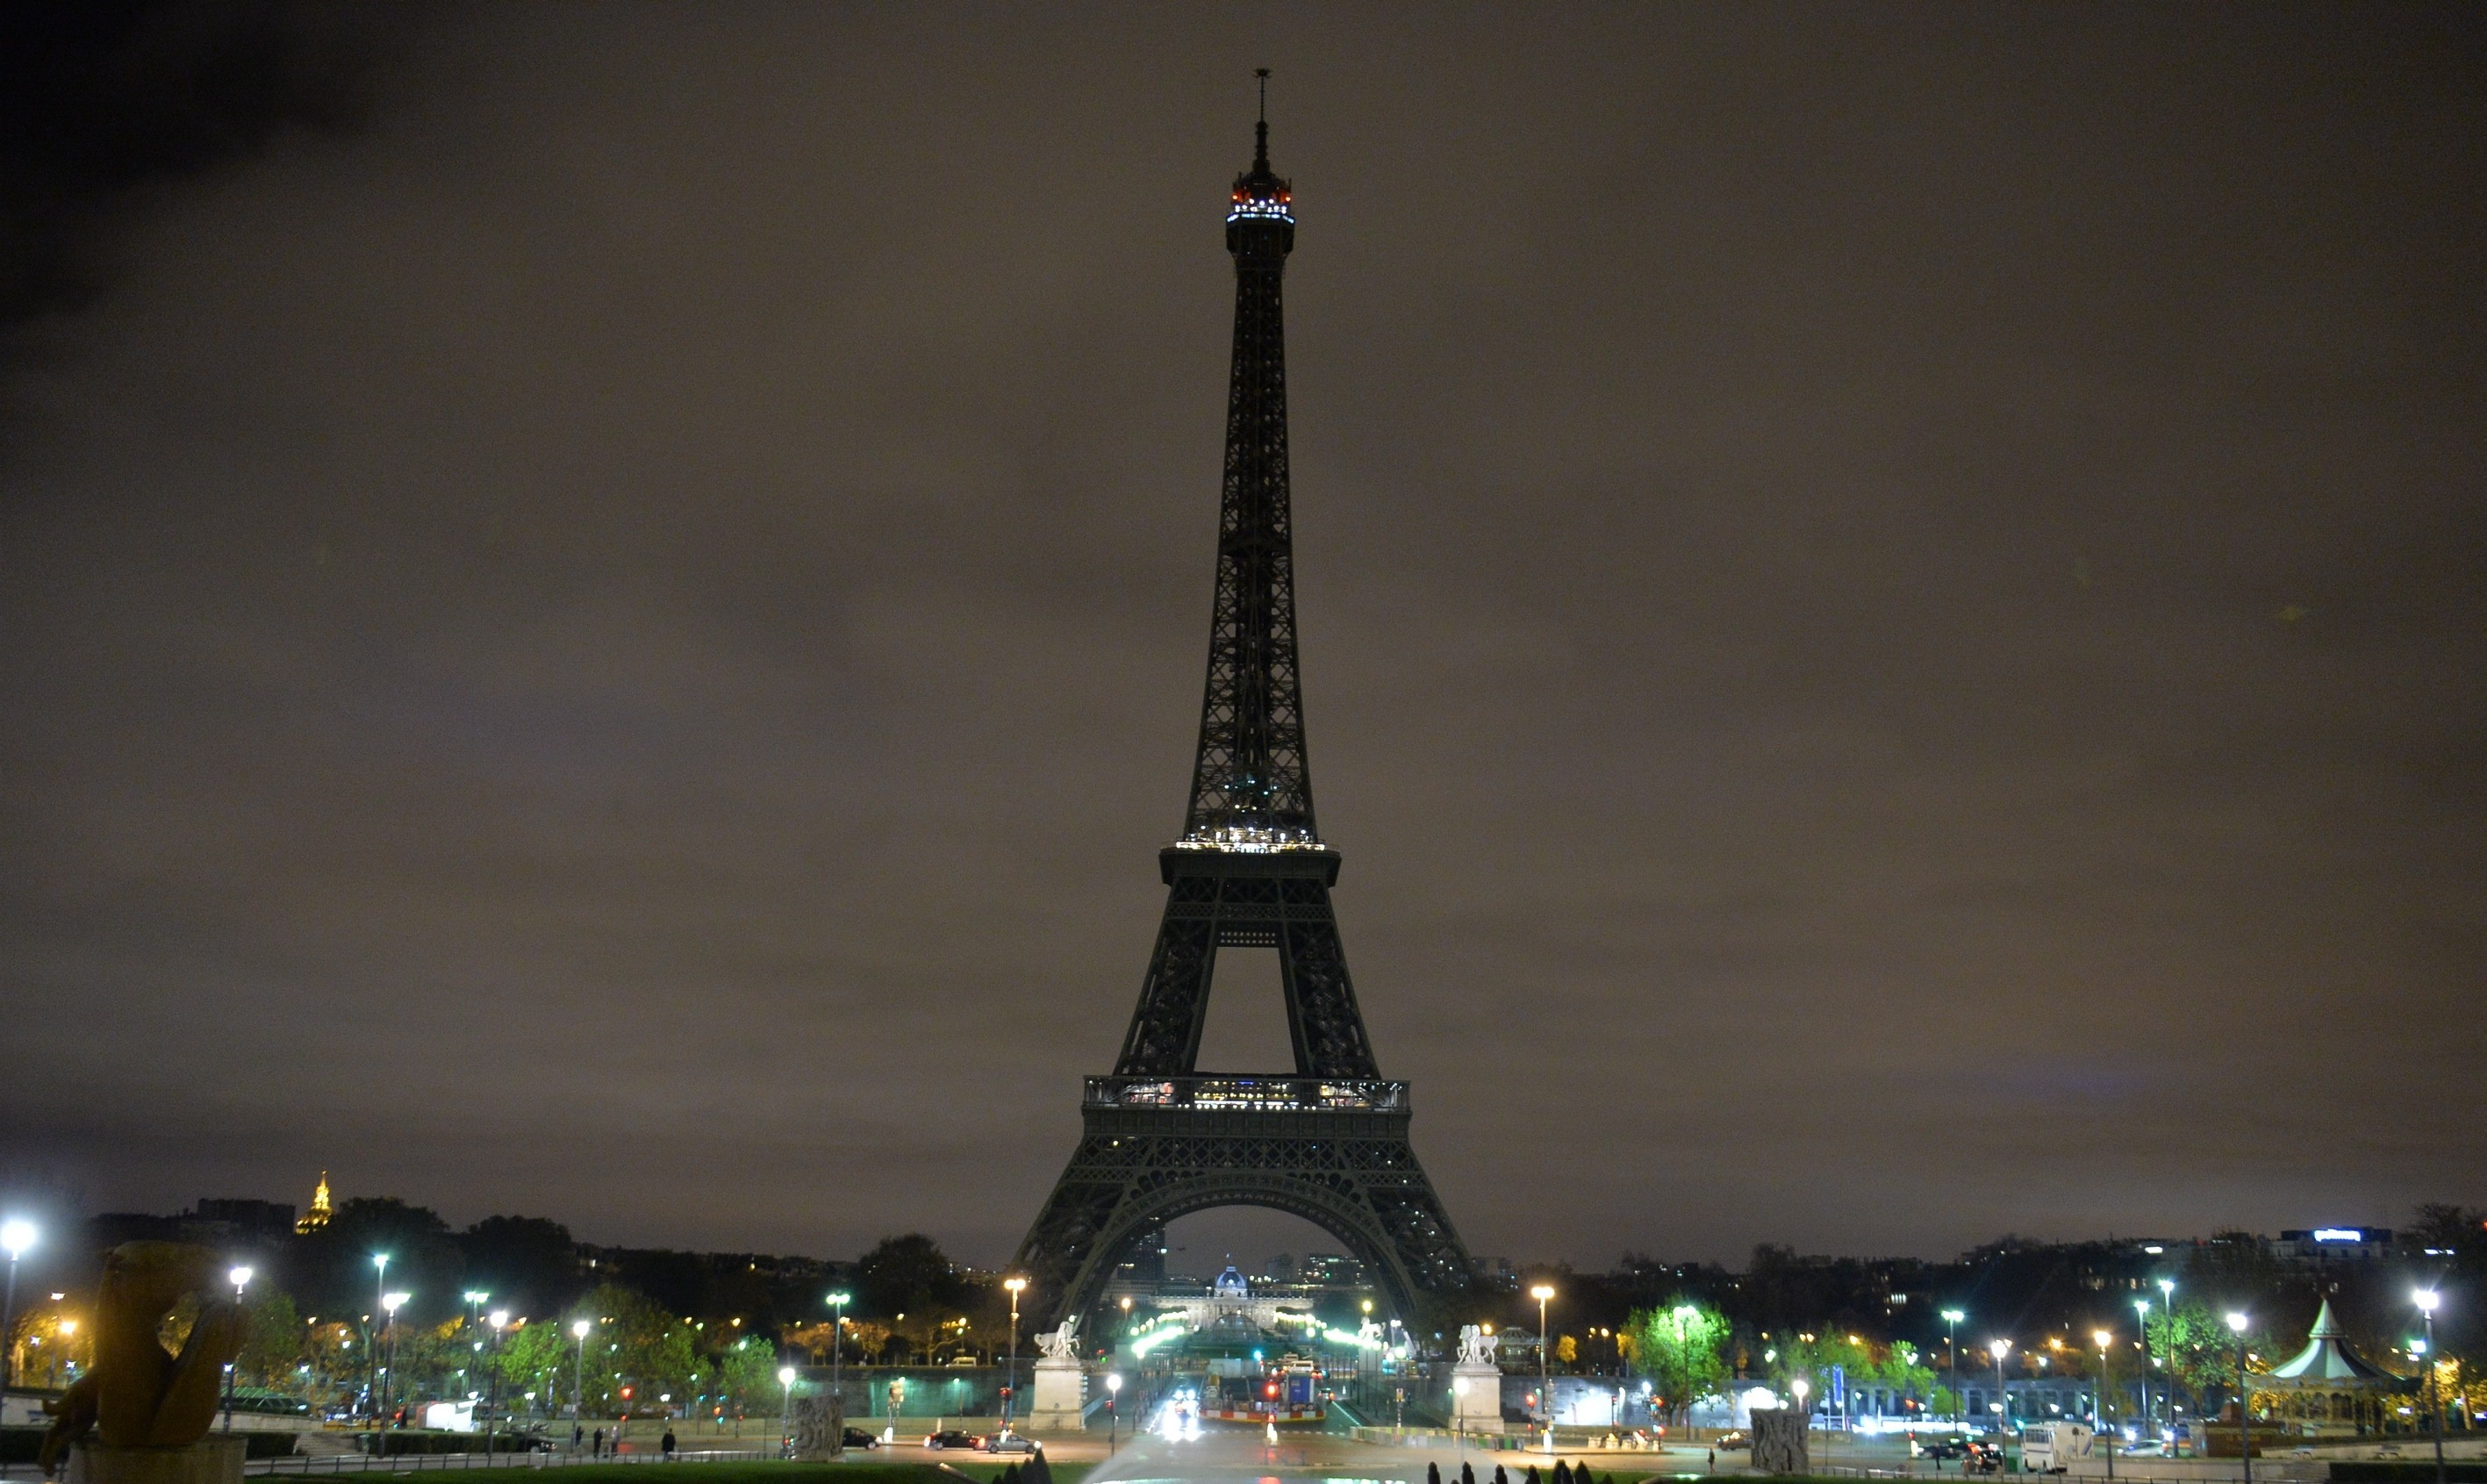 The Eiffel Tower is seen after turning off its lights in respect for the victims of France terror attacks, on Nov. 14, 2015.